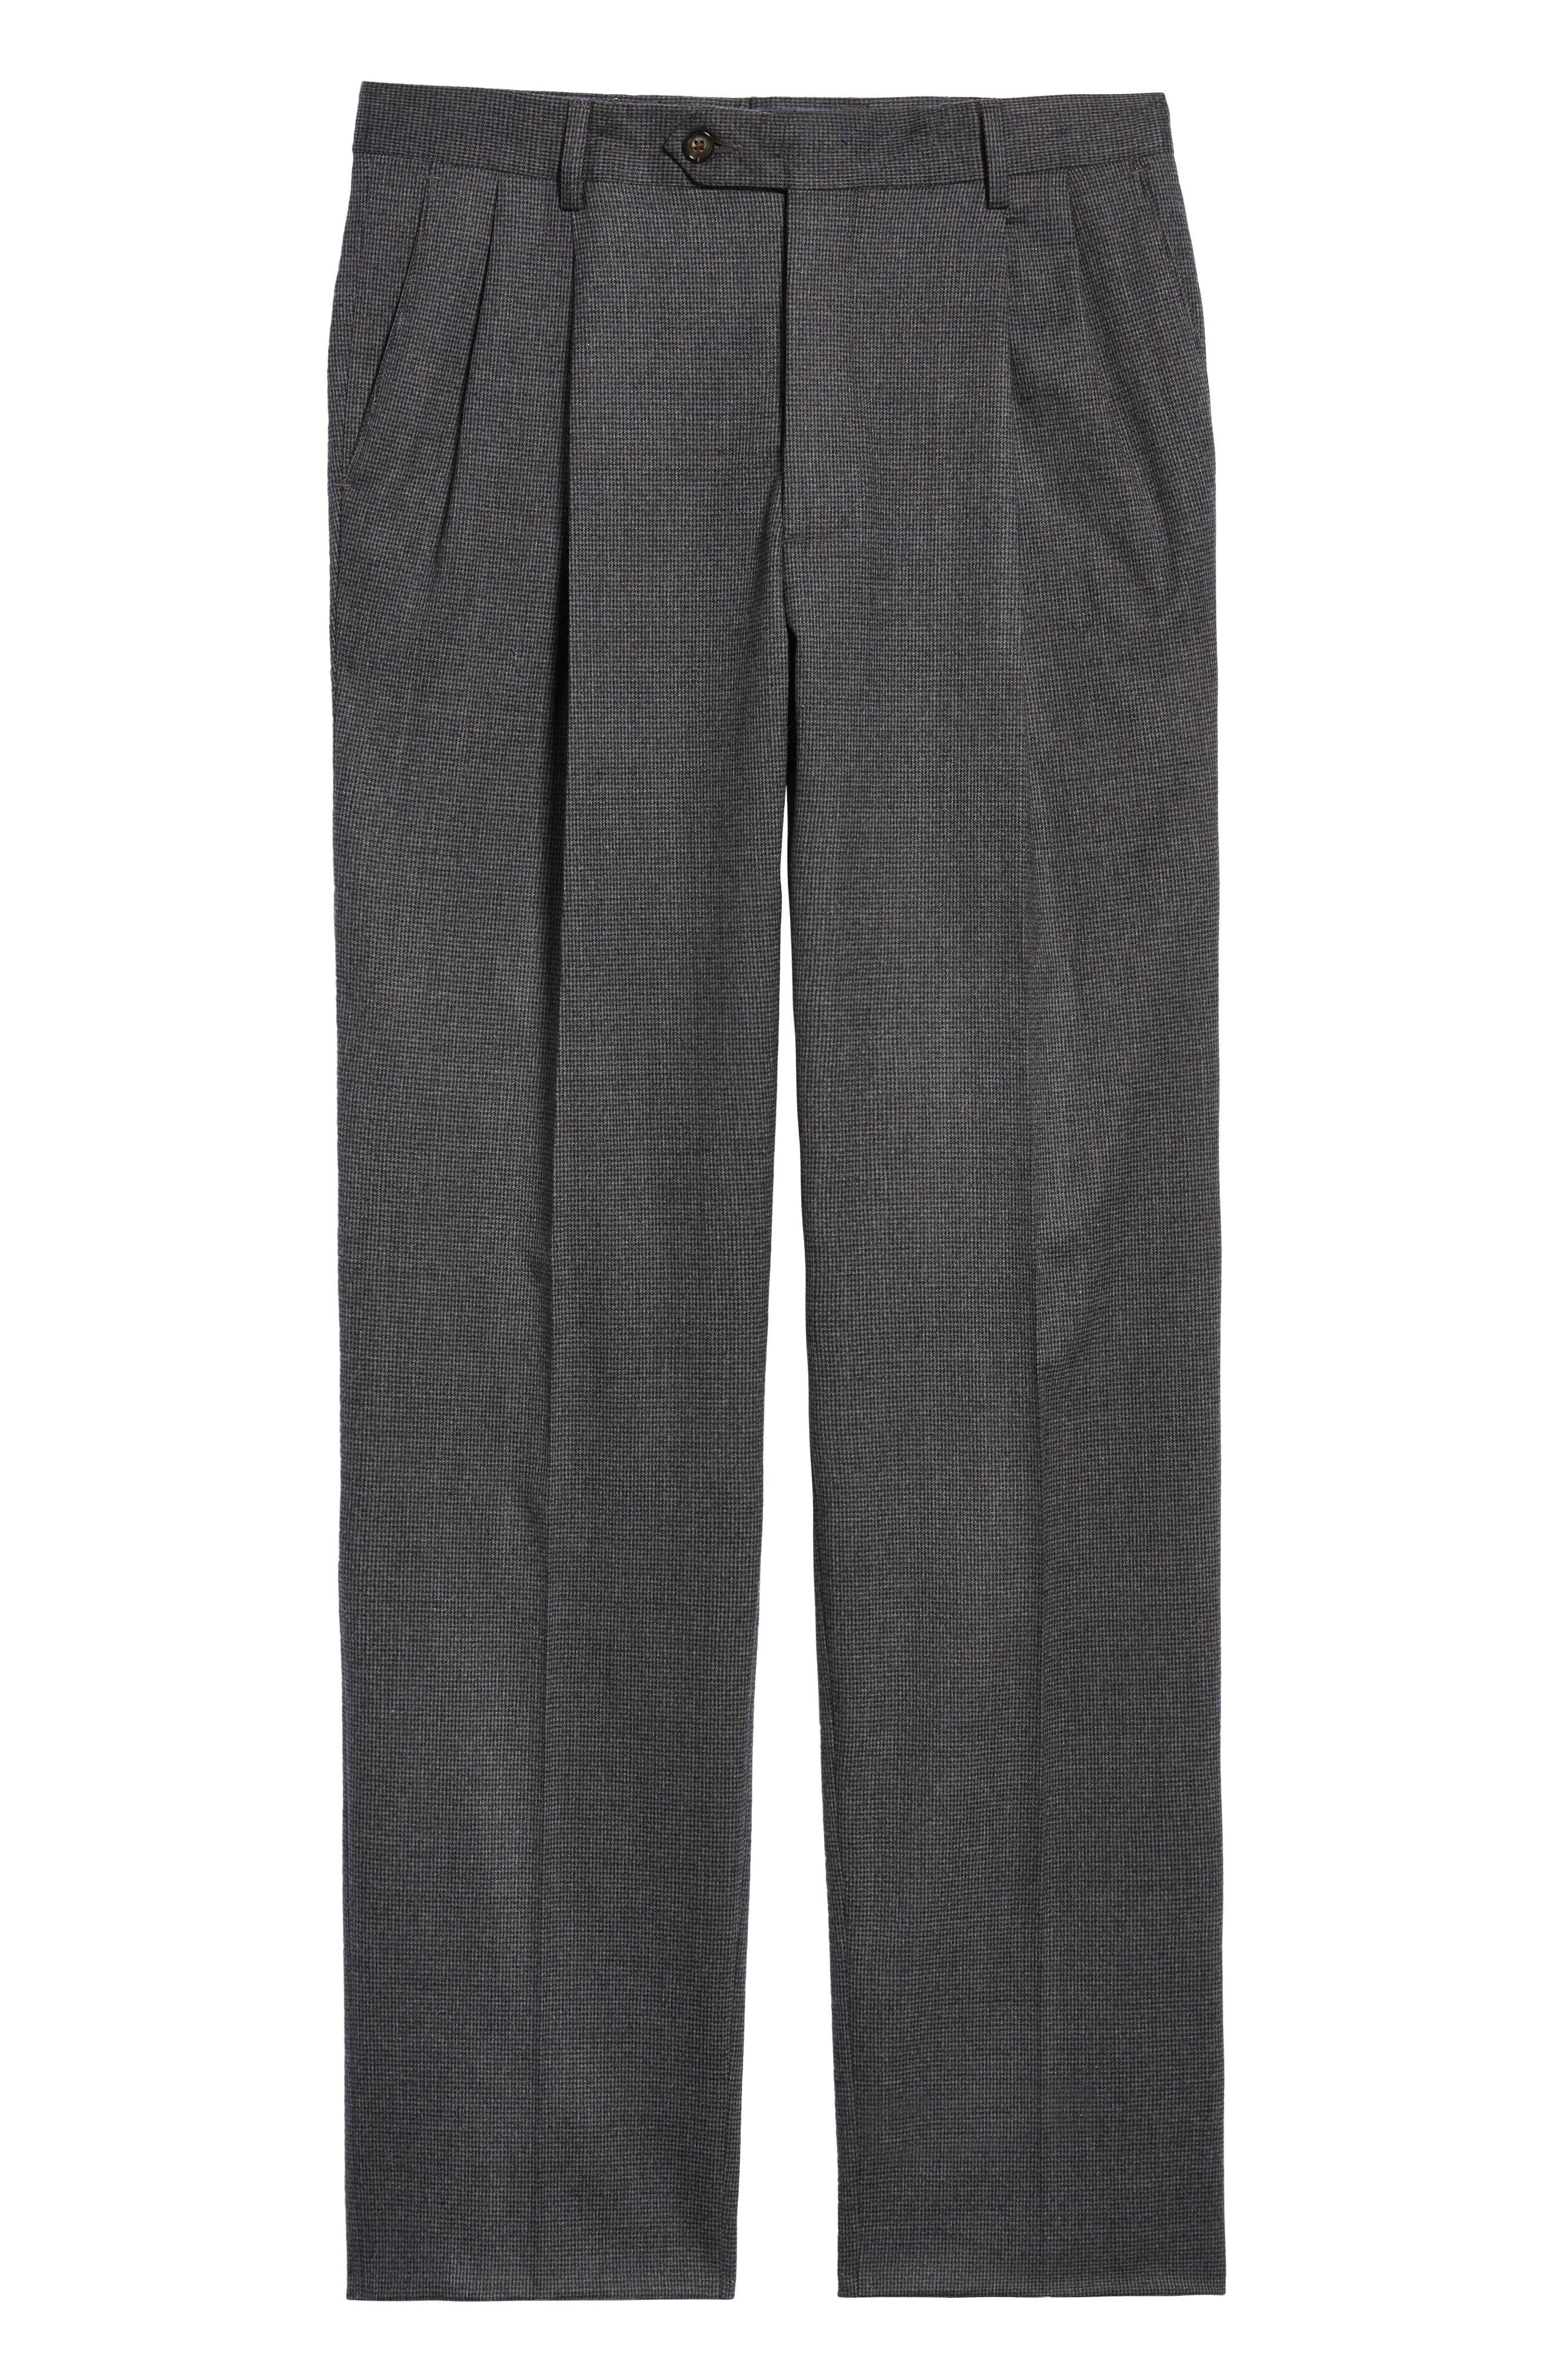 Pleated Stretch Houndstooth Wool Trousers,                             Alternate thumbnail 6, color,                             GREY